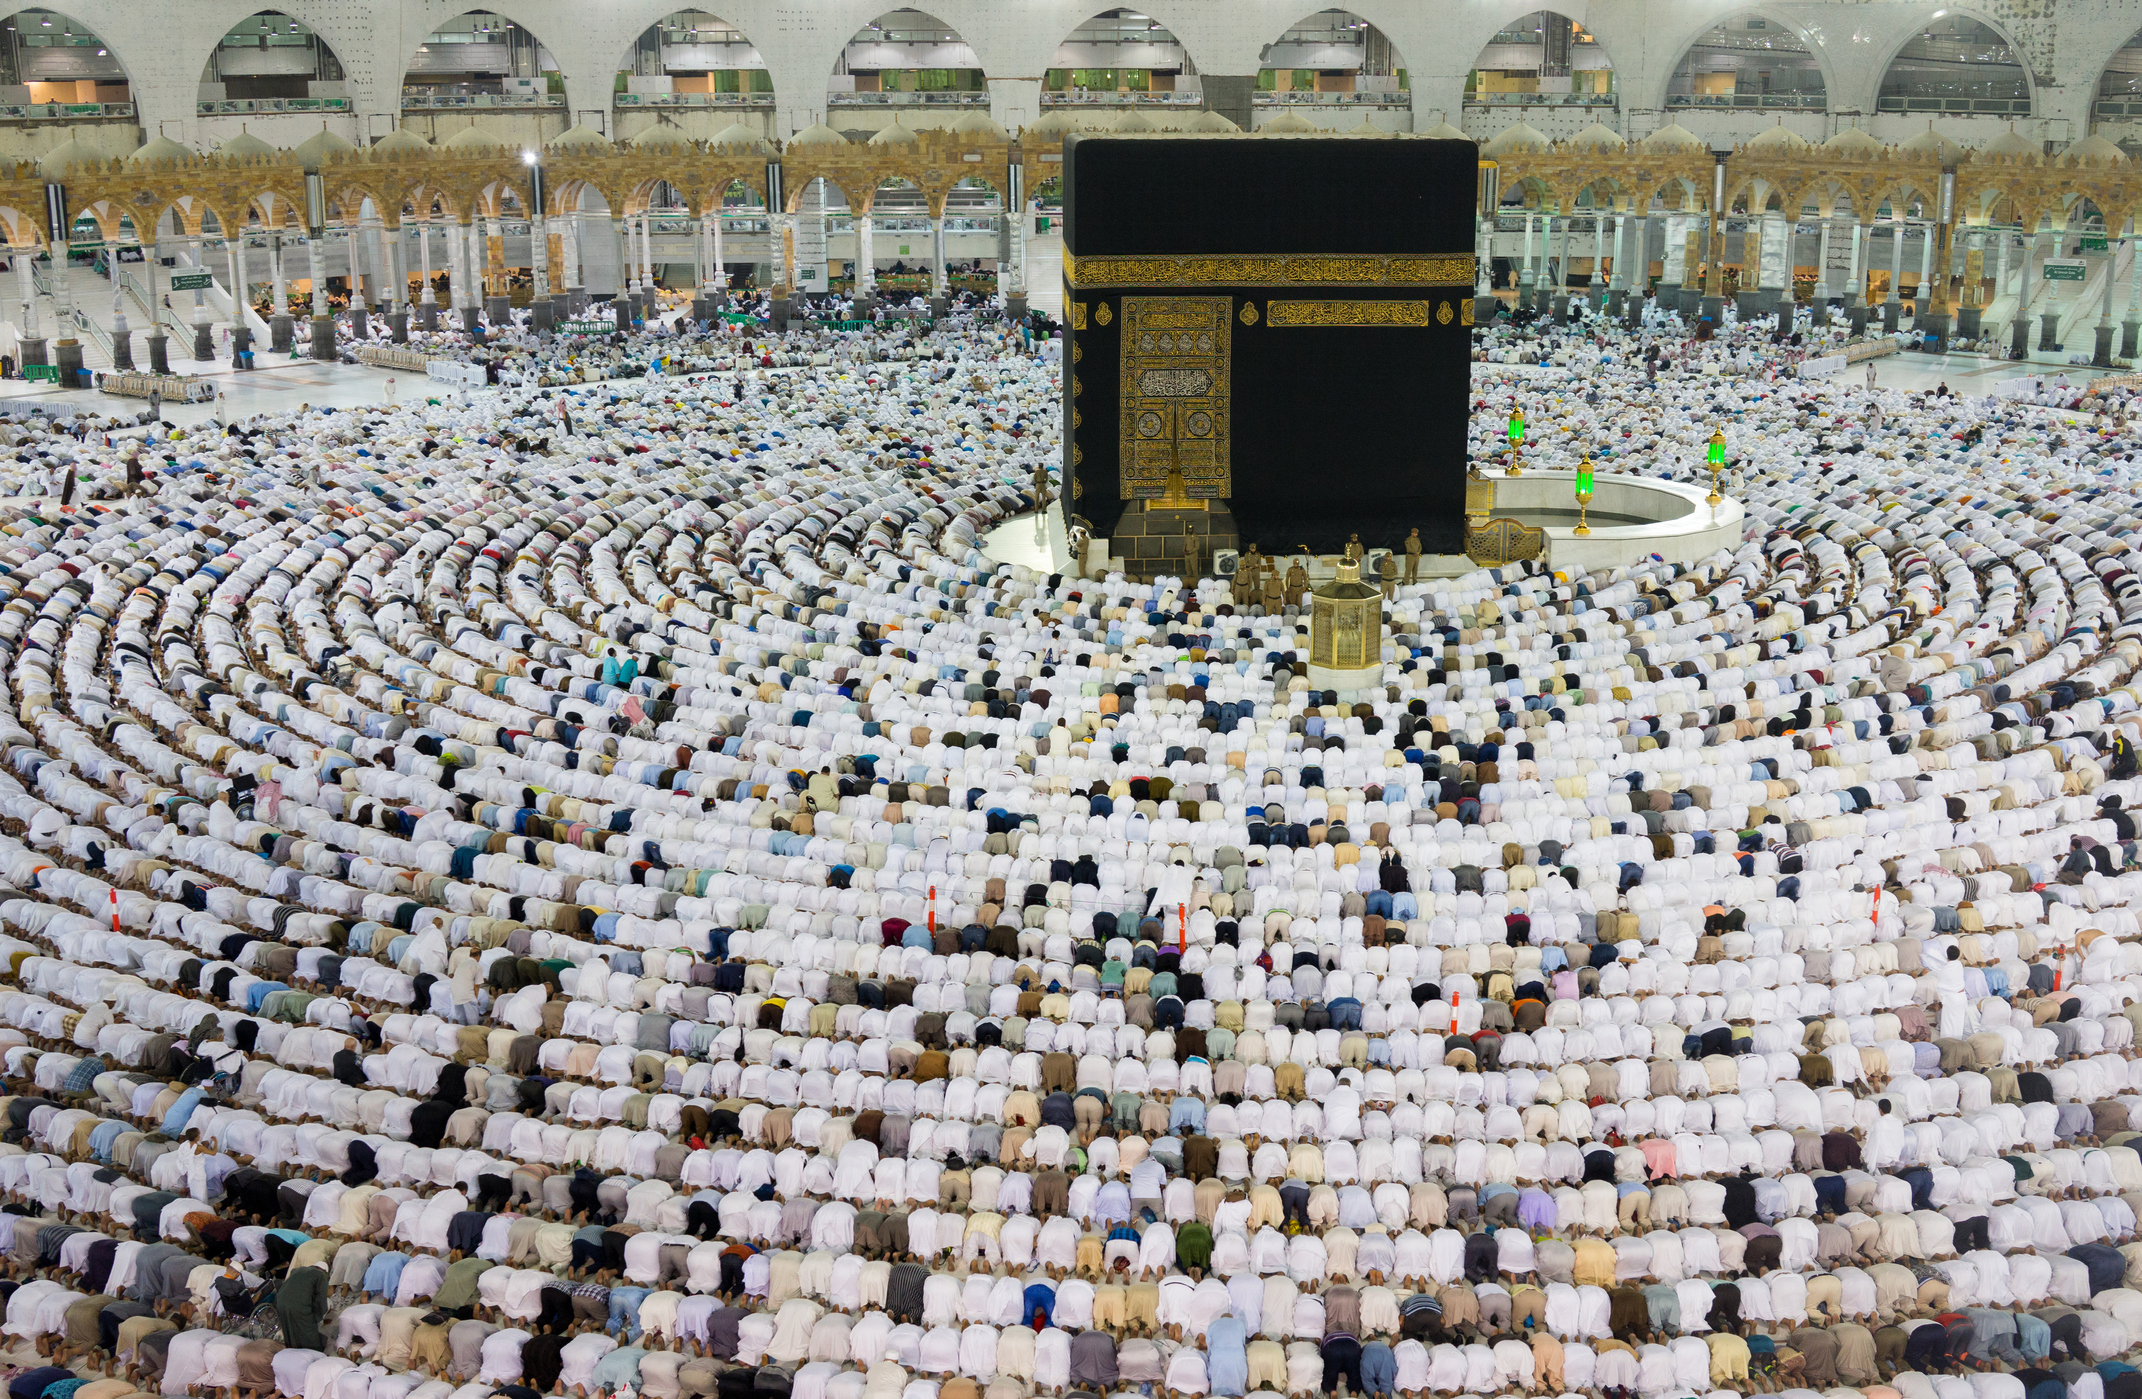 Hajj will take place in 2021 under Covid-19 restrictions